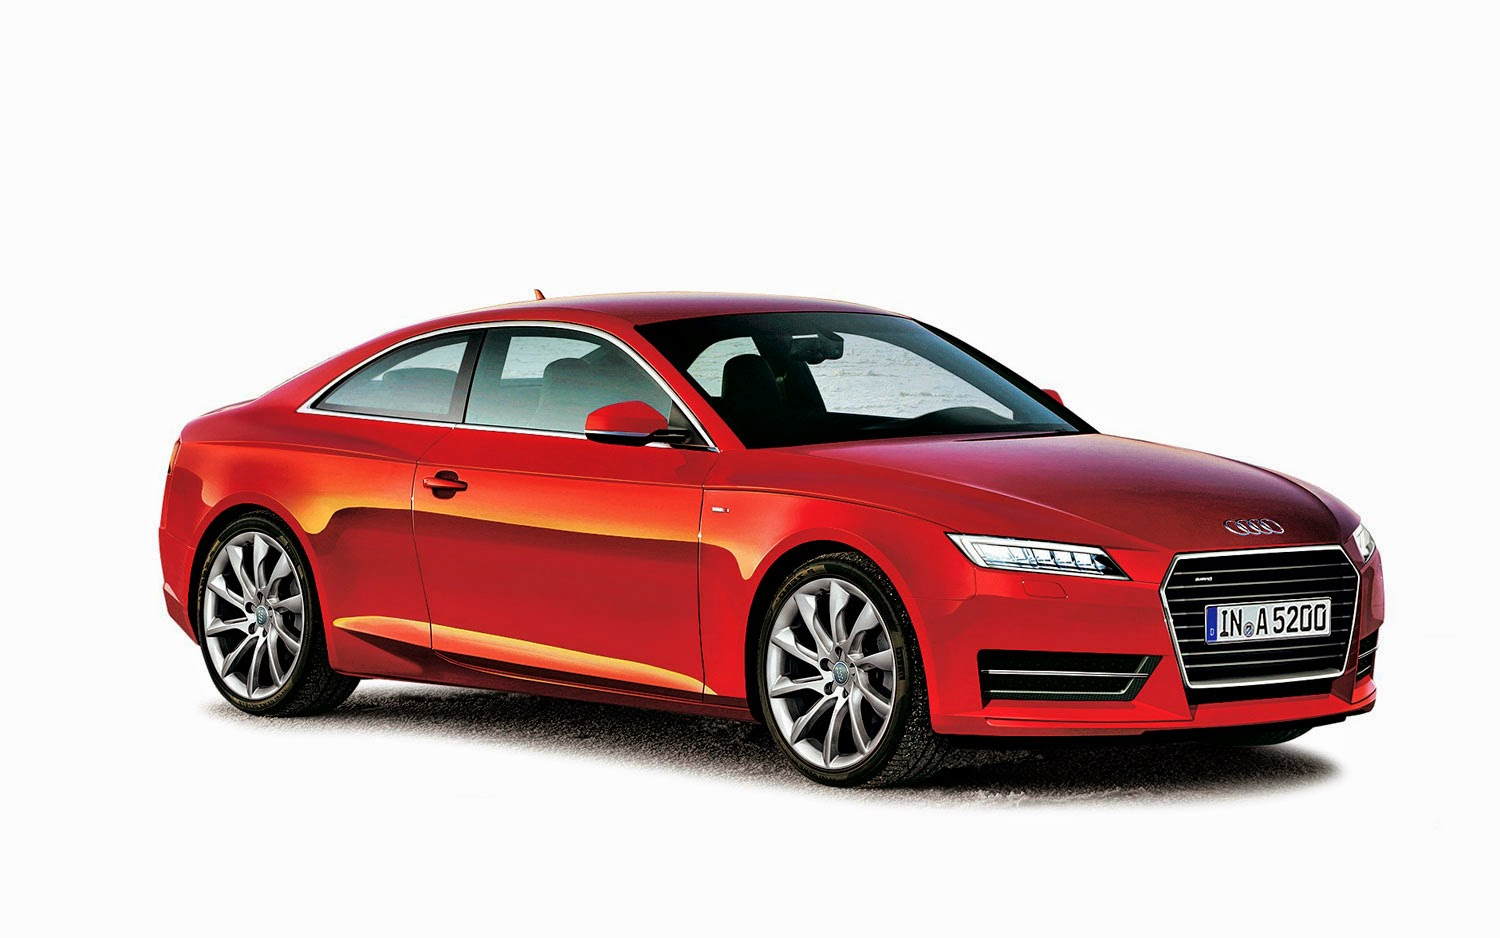 the new 2016 audi a5 redesign cars concept 2015 2016. Black Bedroom Furniture Sets. Home Design Ideas